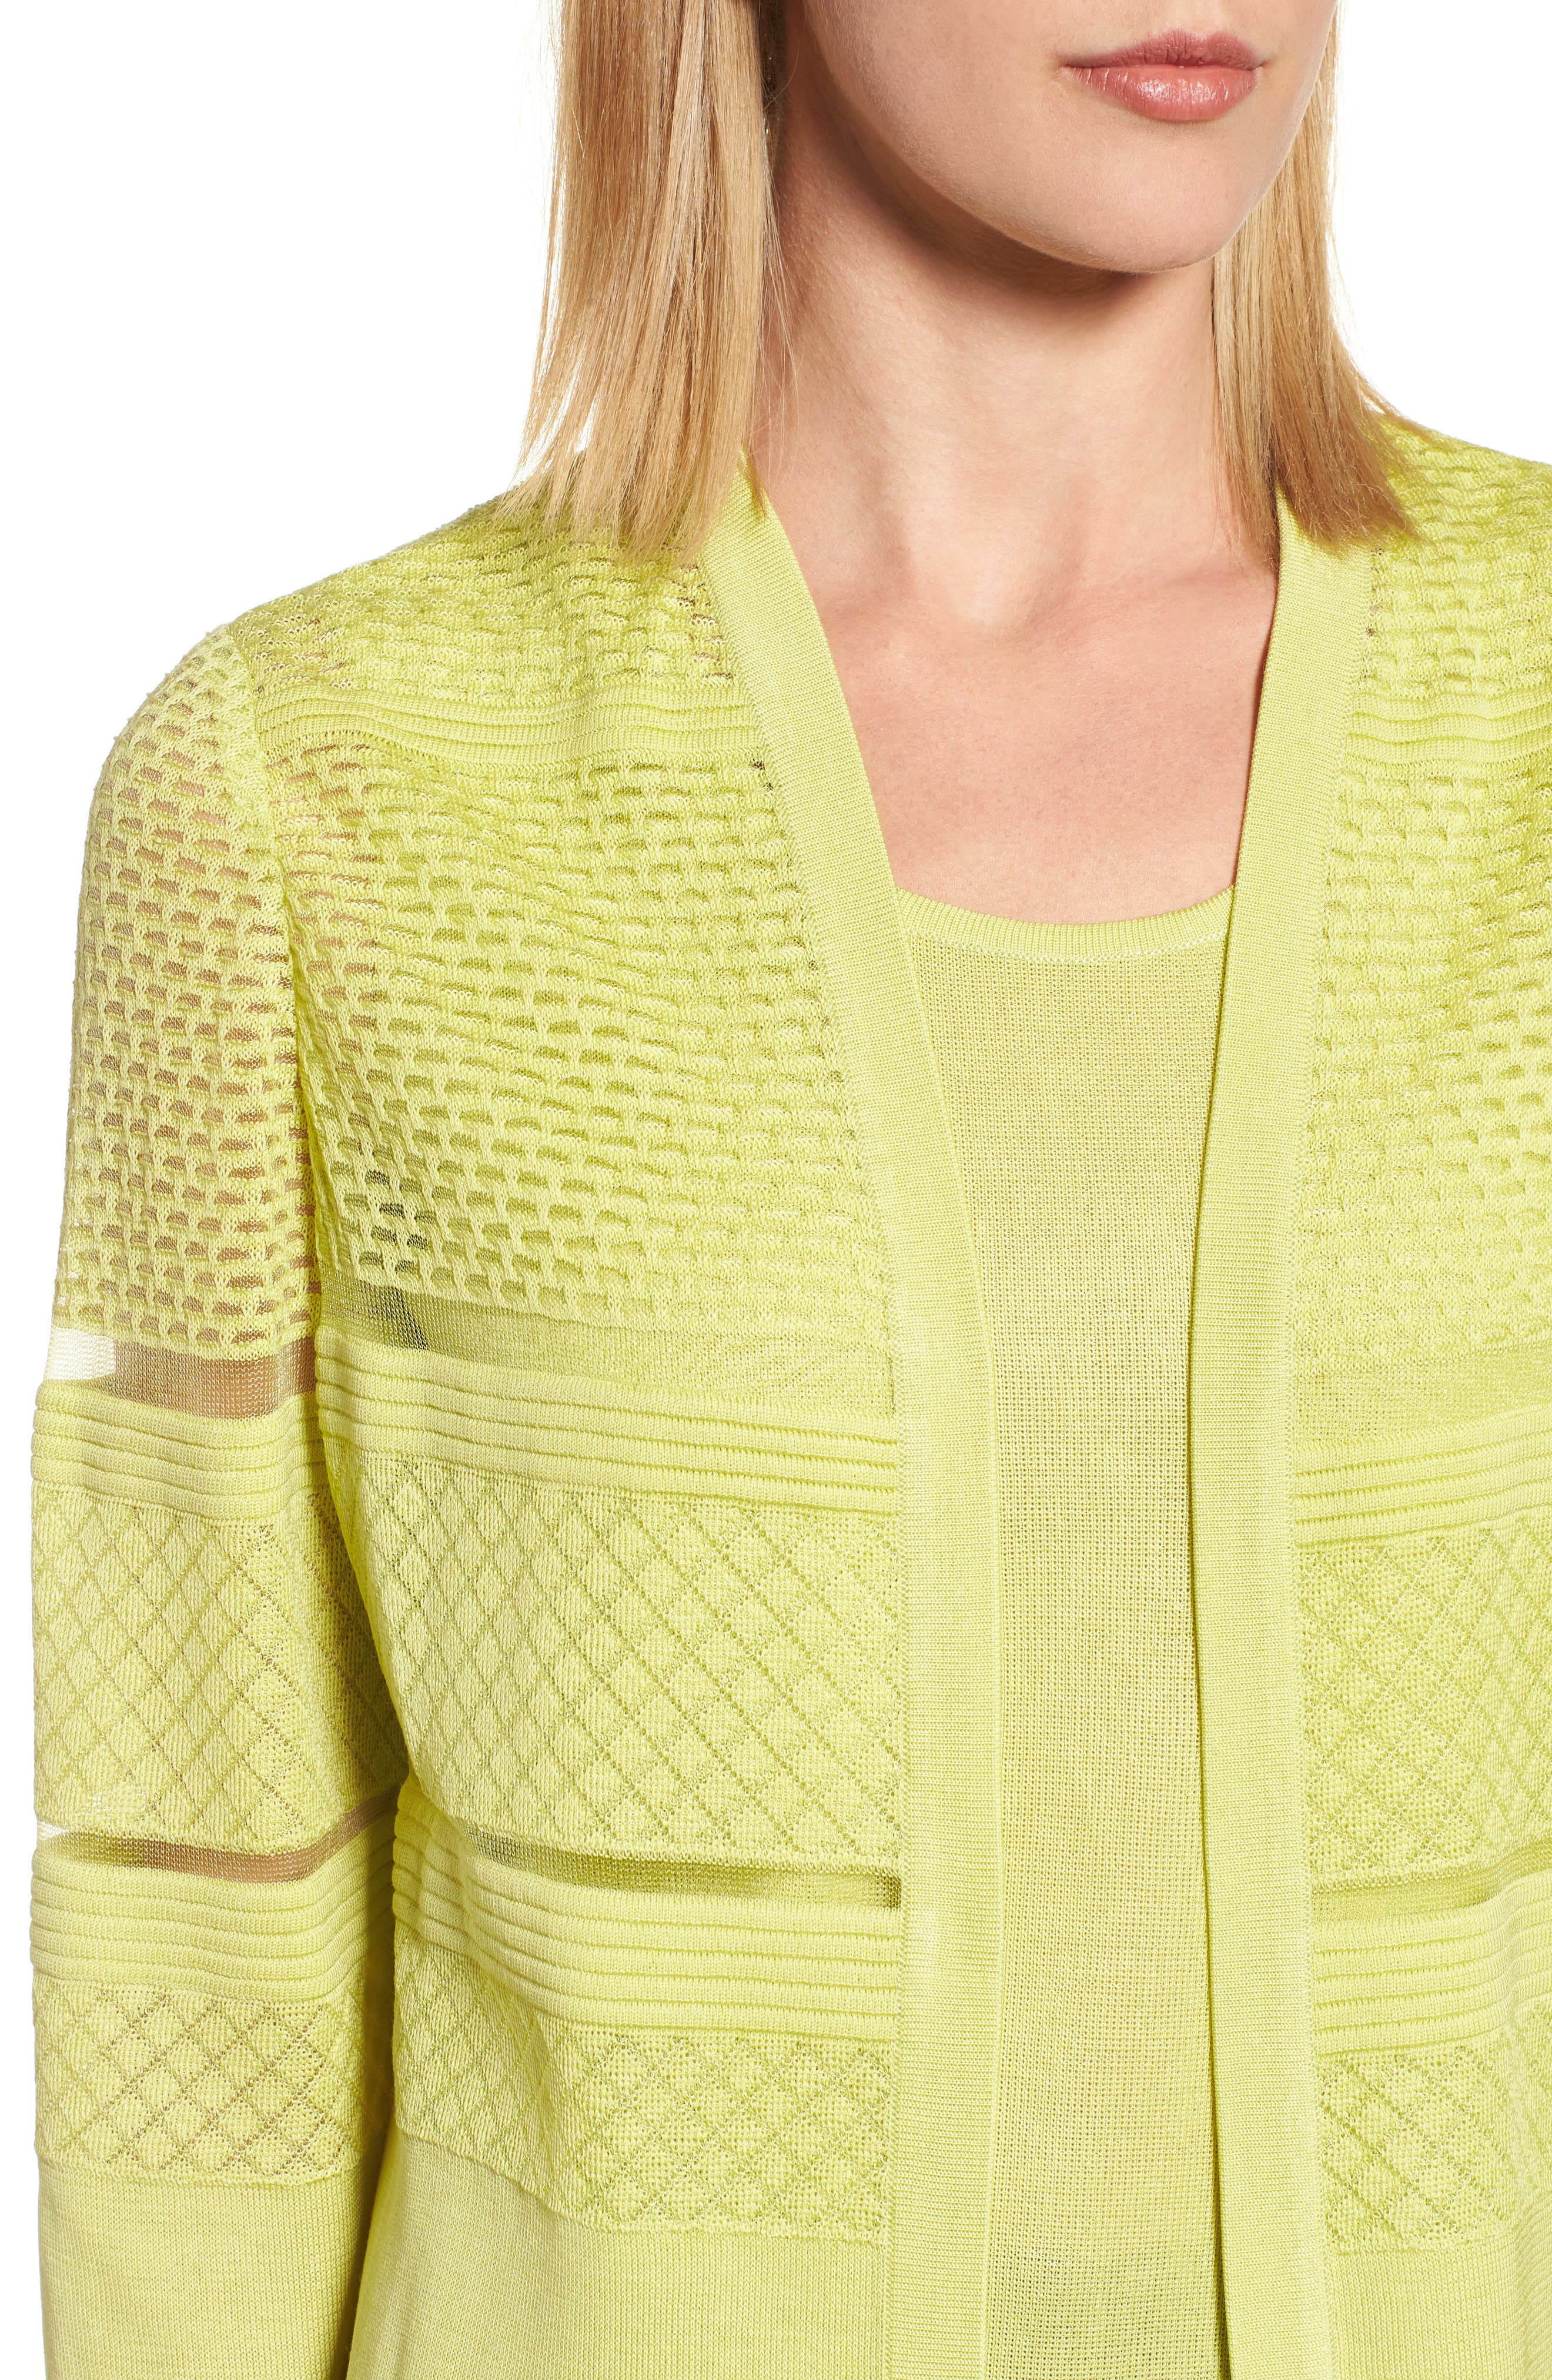 Long Jacquard Knit Jacket,                             Alternate thumbnail 4, color,                             725